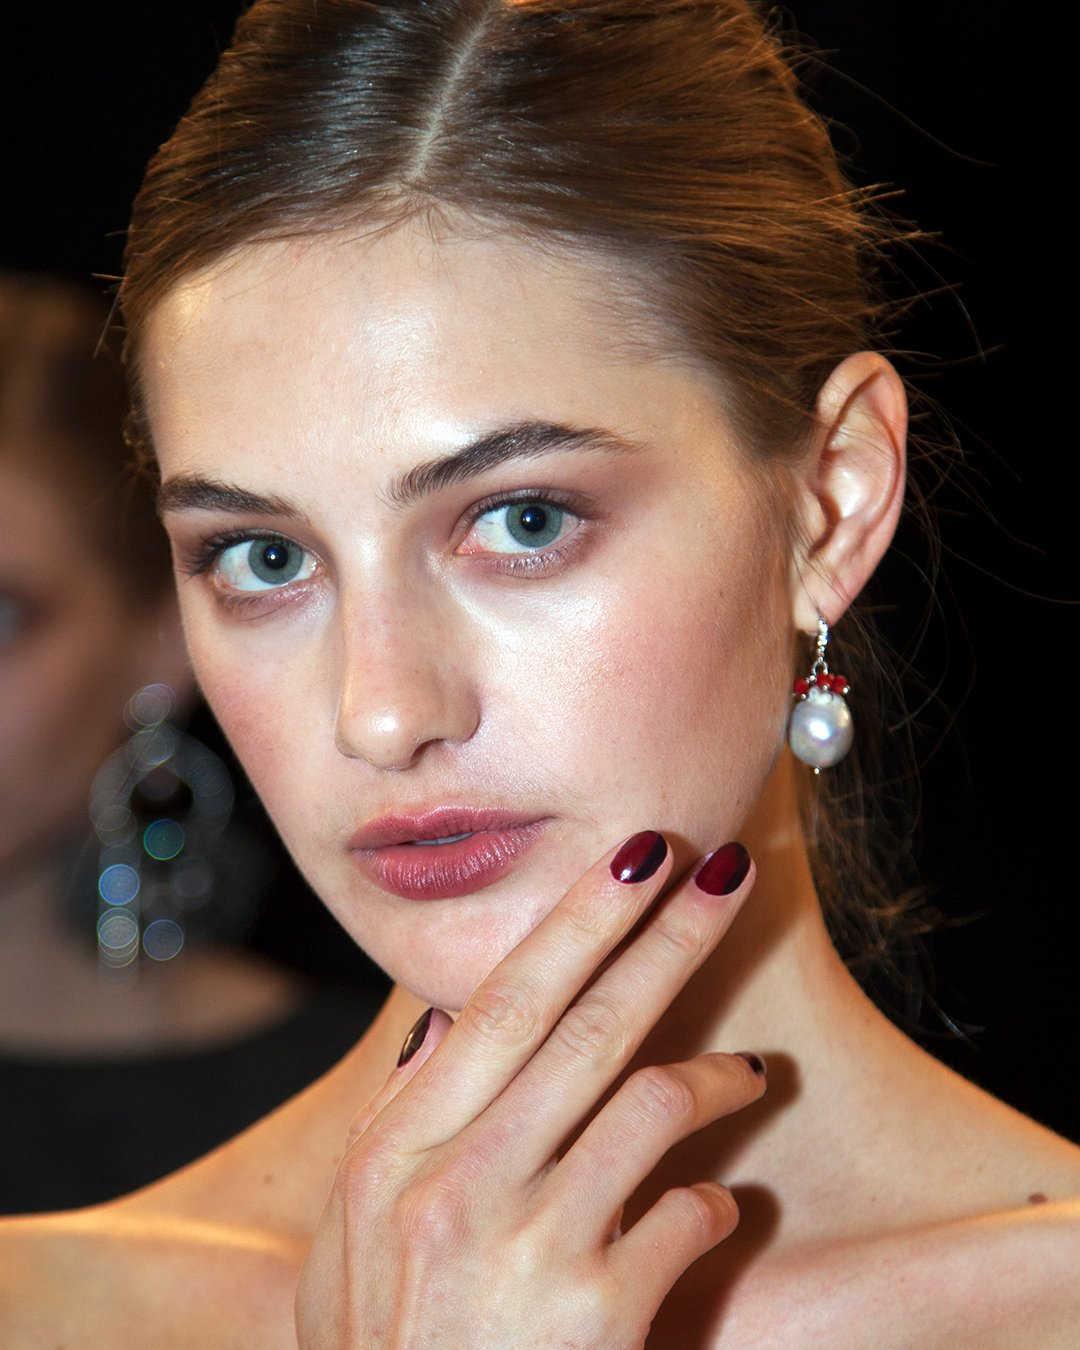 NYFW: Deborah Lippman Nail Art for Hugo Boss, Badgley Mishka